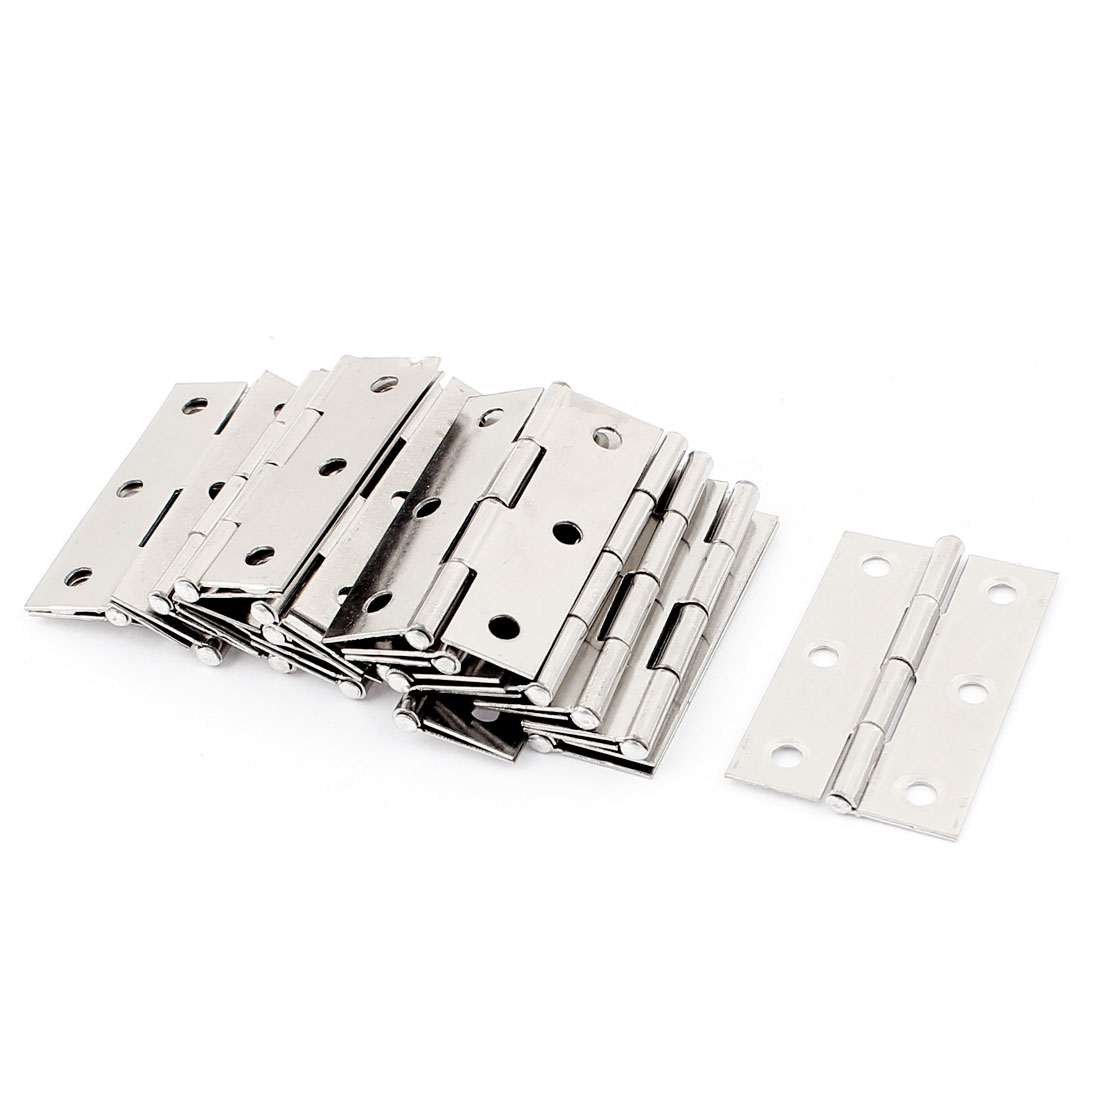 Stainless Steel 6 Hole Square Corner Door Hinges 55 x 35mm 20pcs